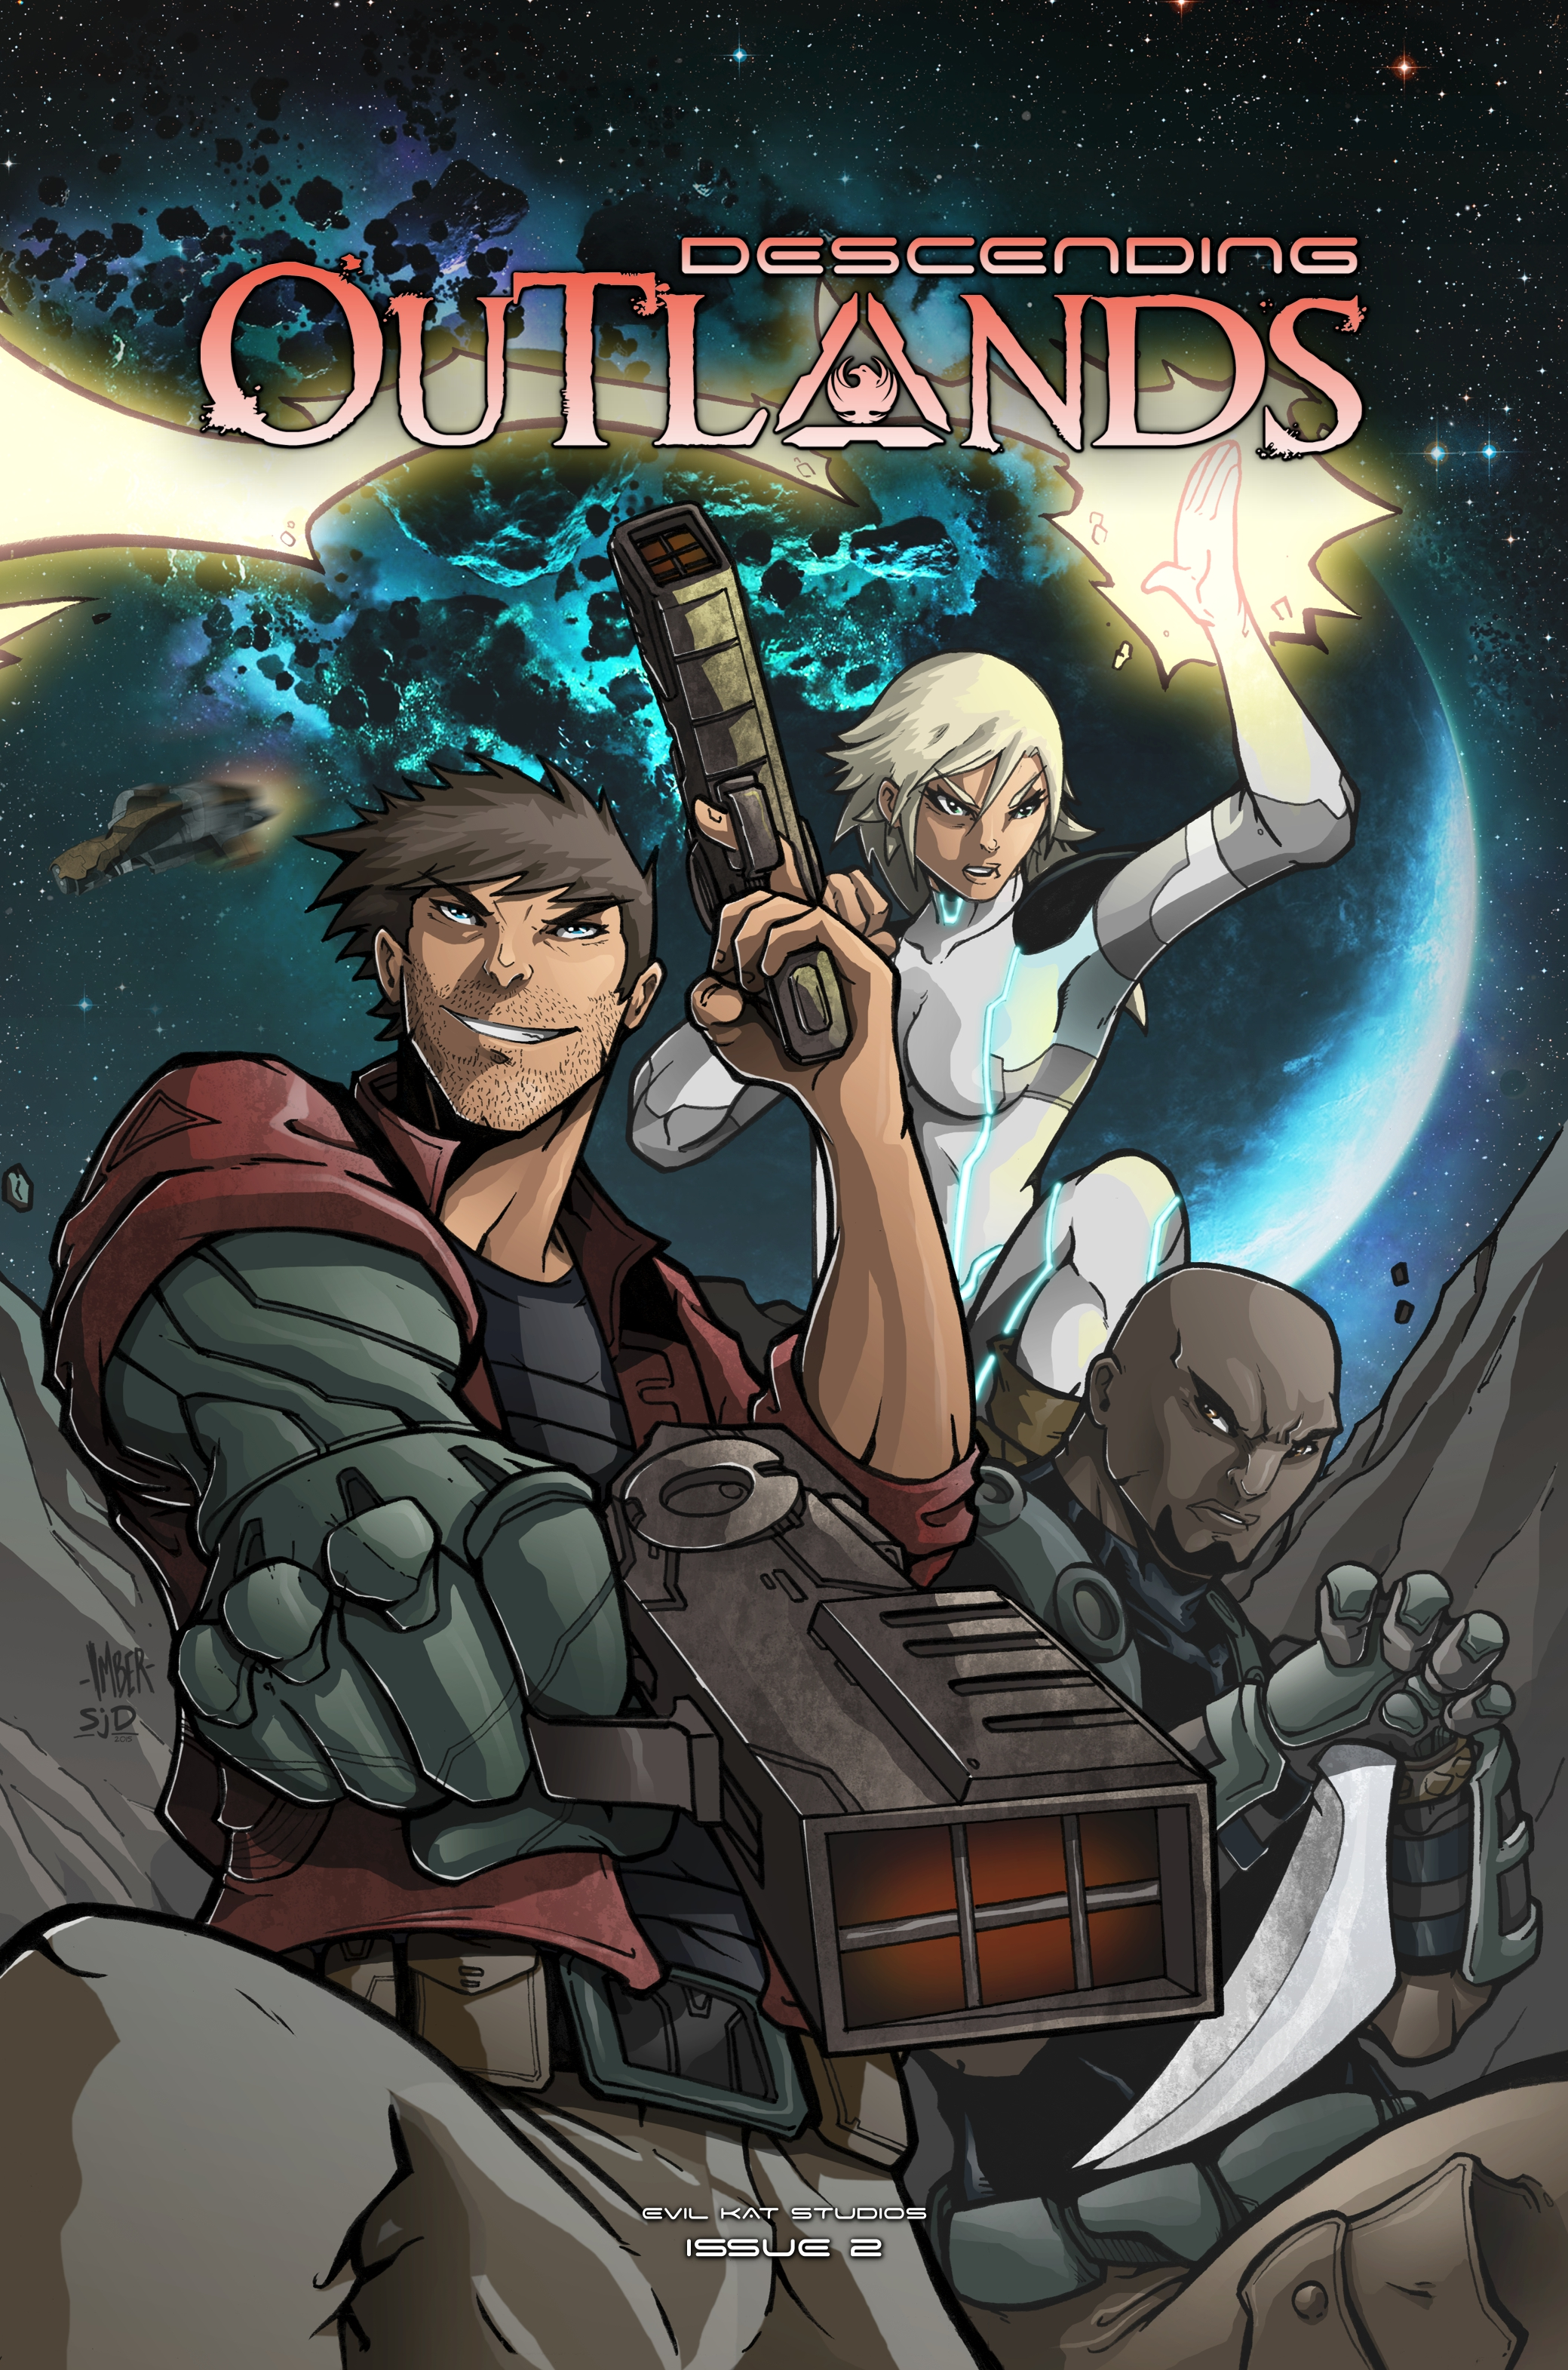 Descending Outlands Issue 2 - Cover